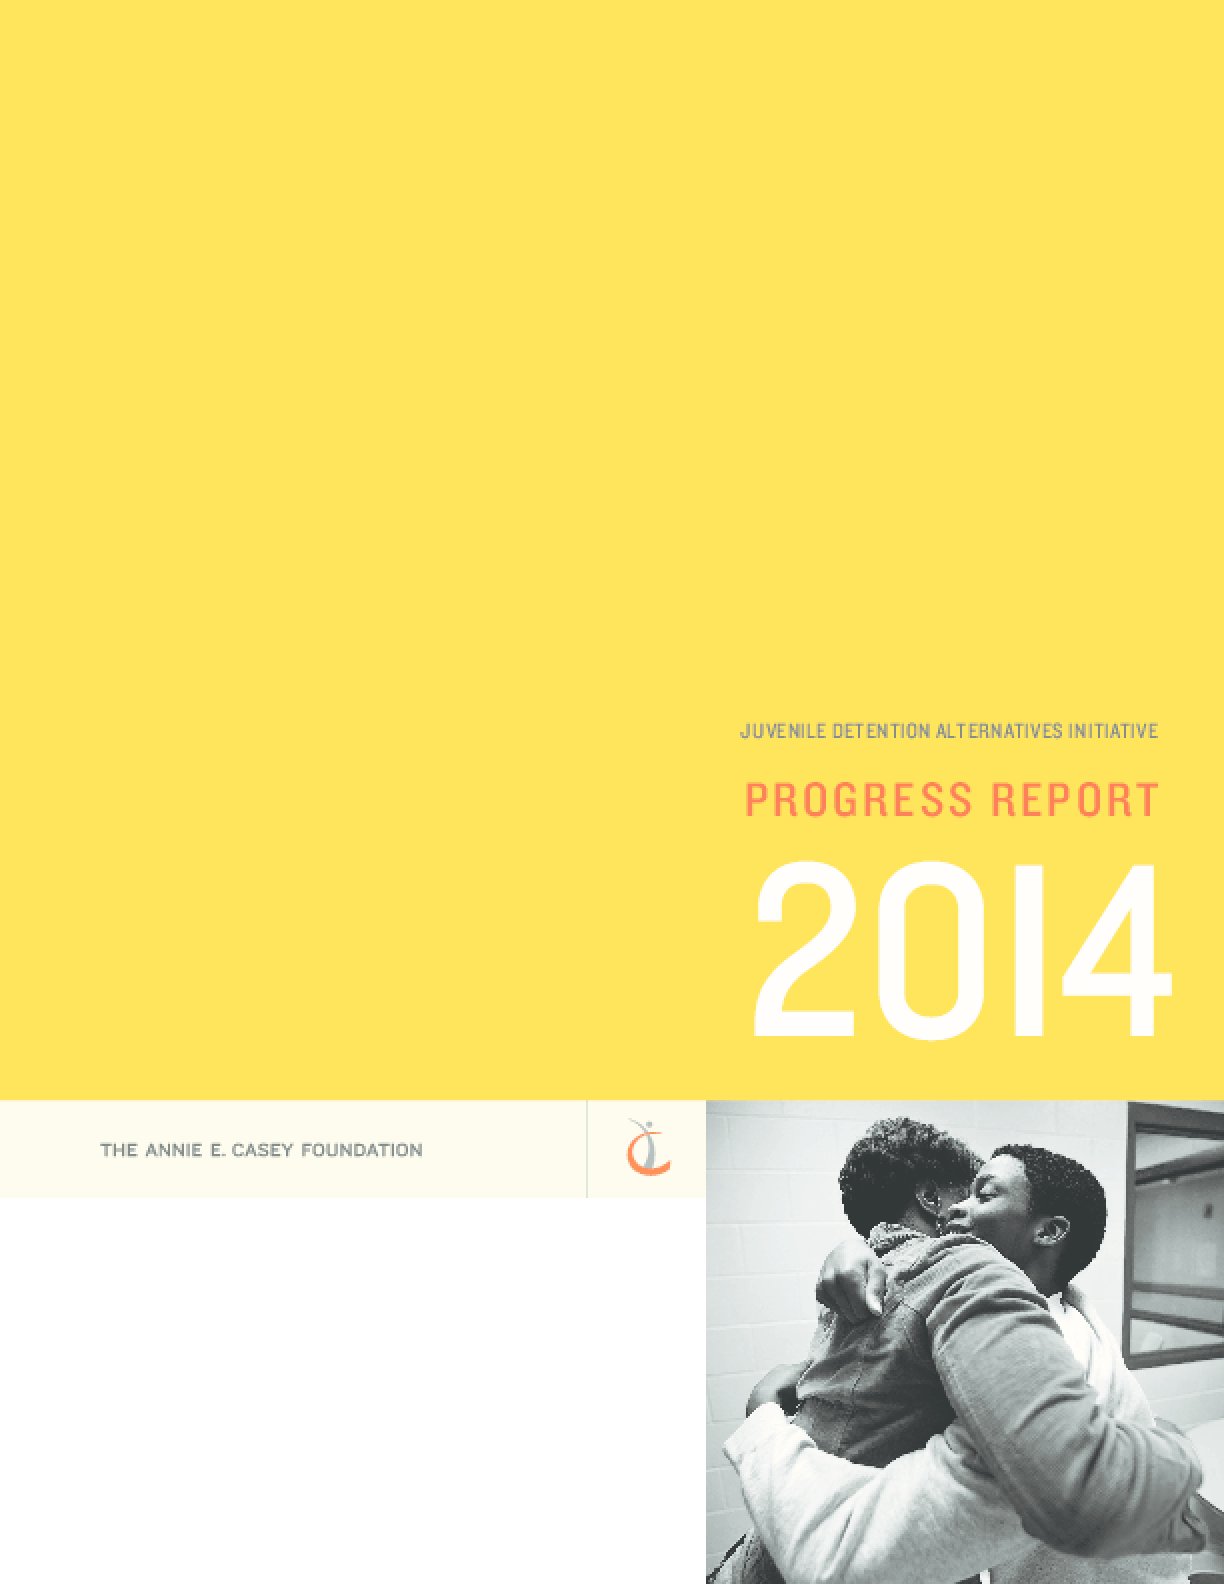 Juvenile Detention Alternatives Initiative Progress Report 2014